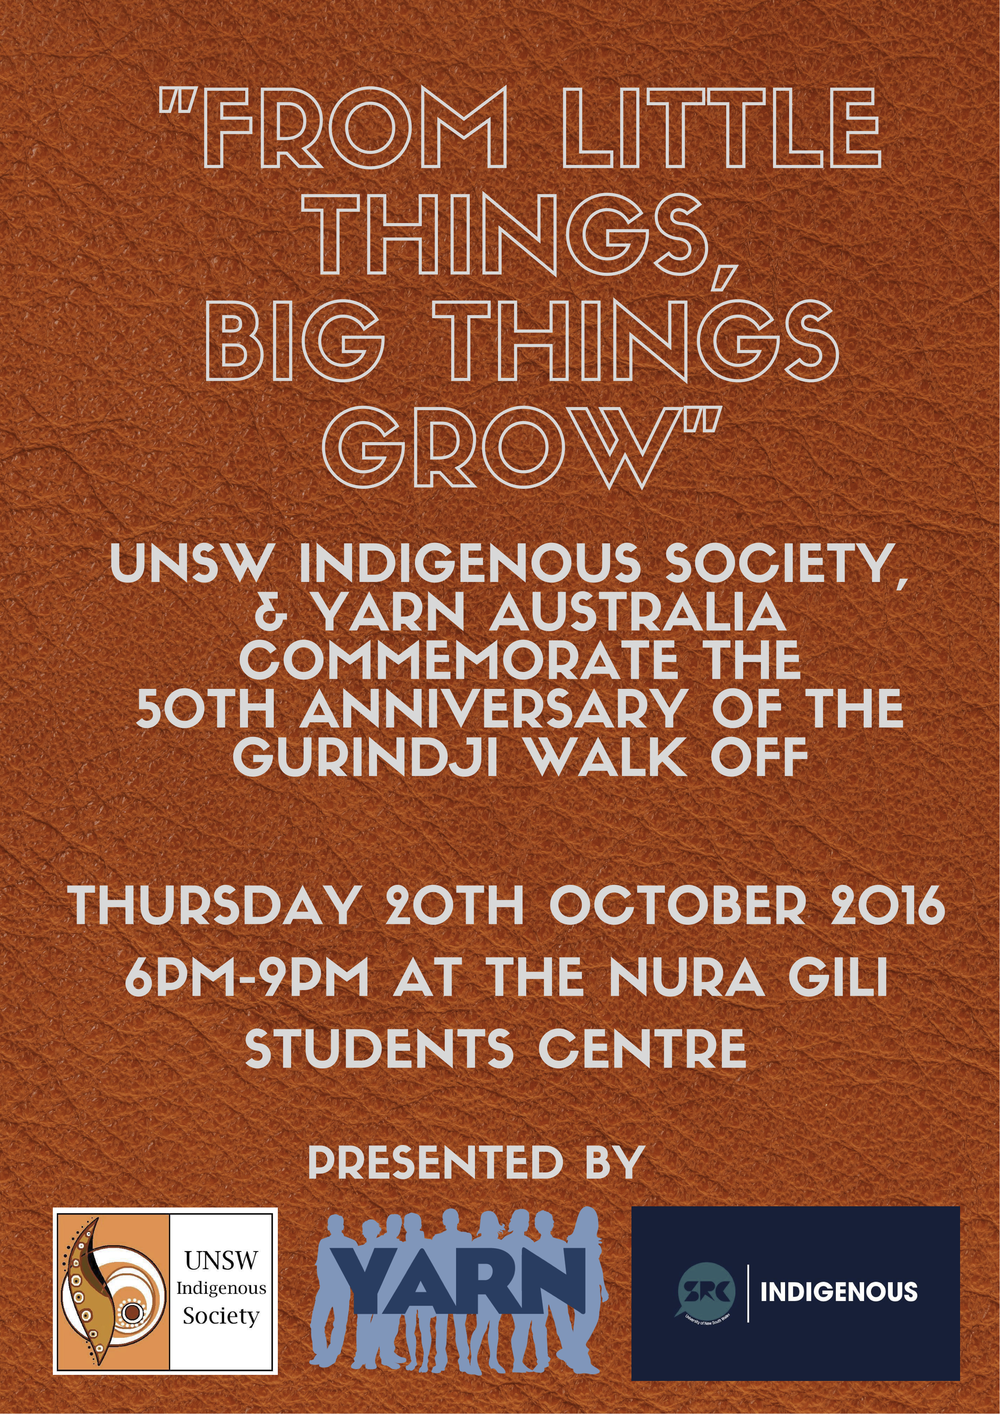 2016 OCTOBER YARN A ustralia Partners with the UNSW Indigenous Society to Commemorate the 50th Anniversary of the Gurindji Wave Hill Walk Off hosted at the Nura Gili Students Centre